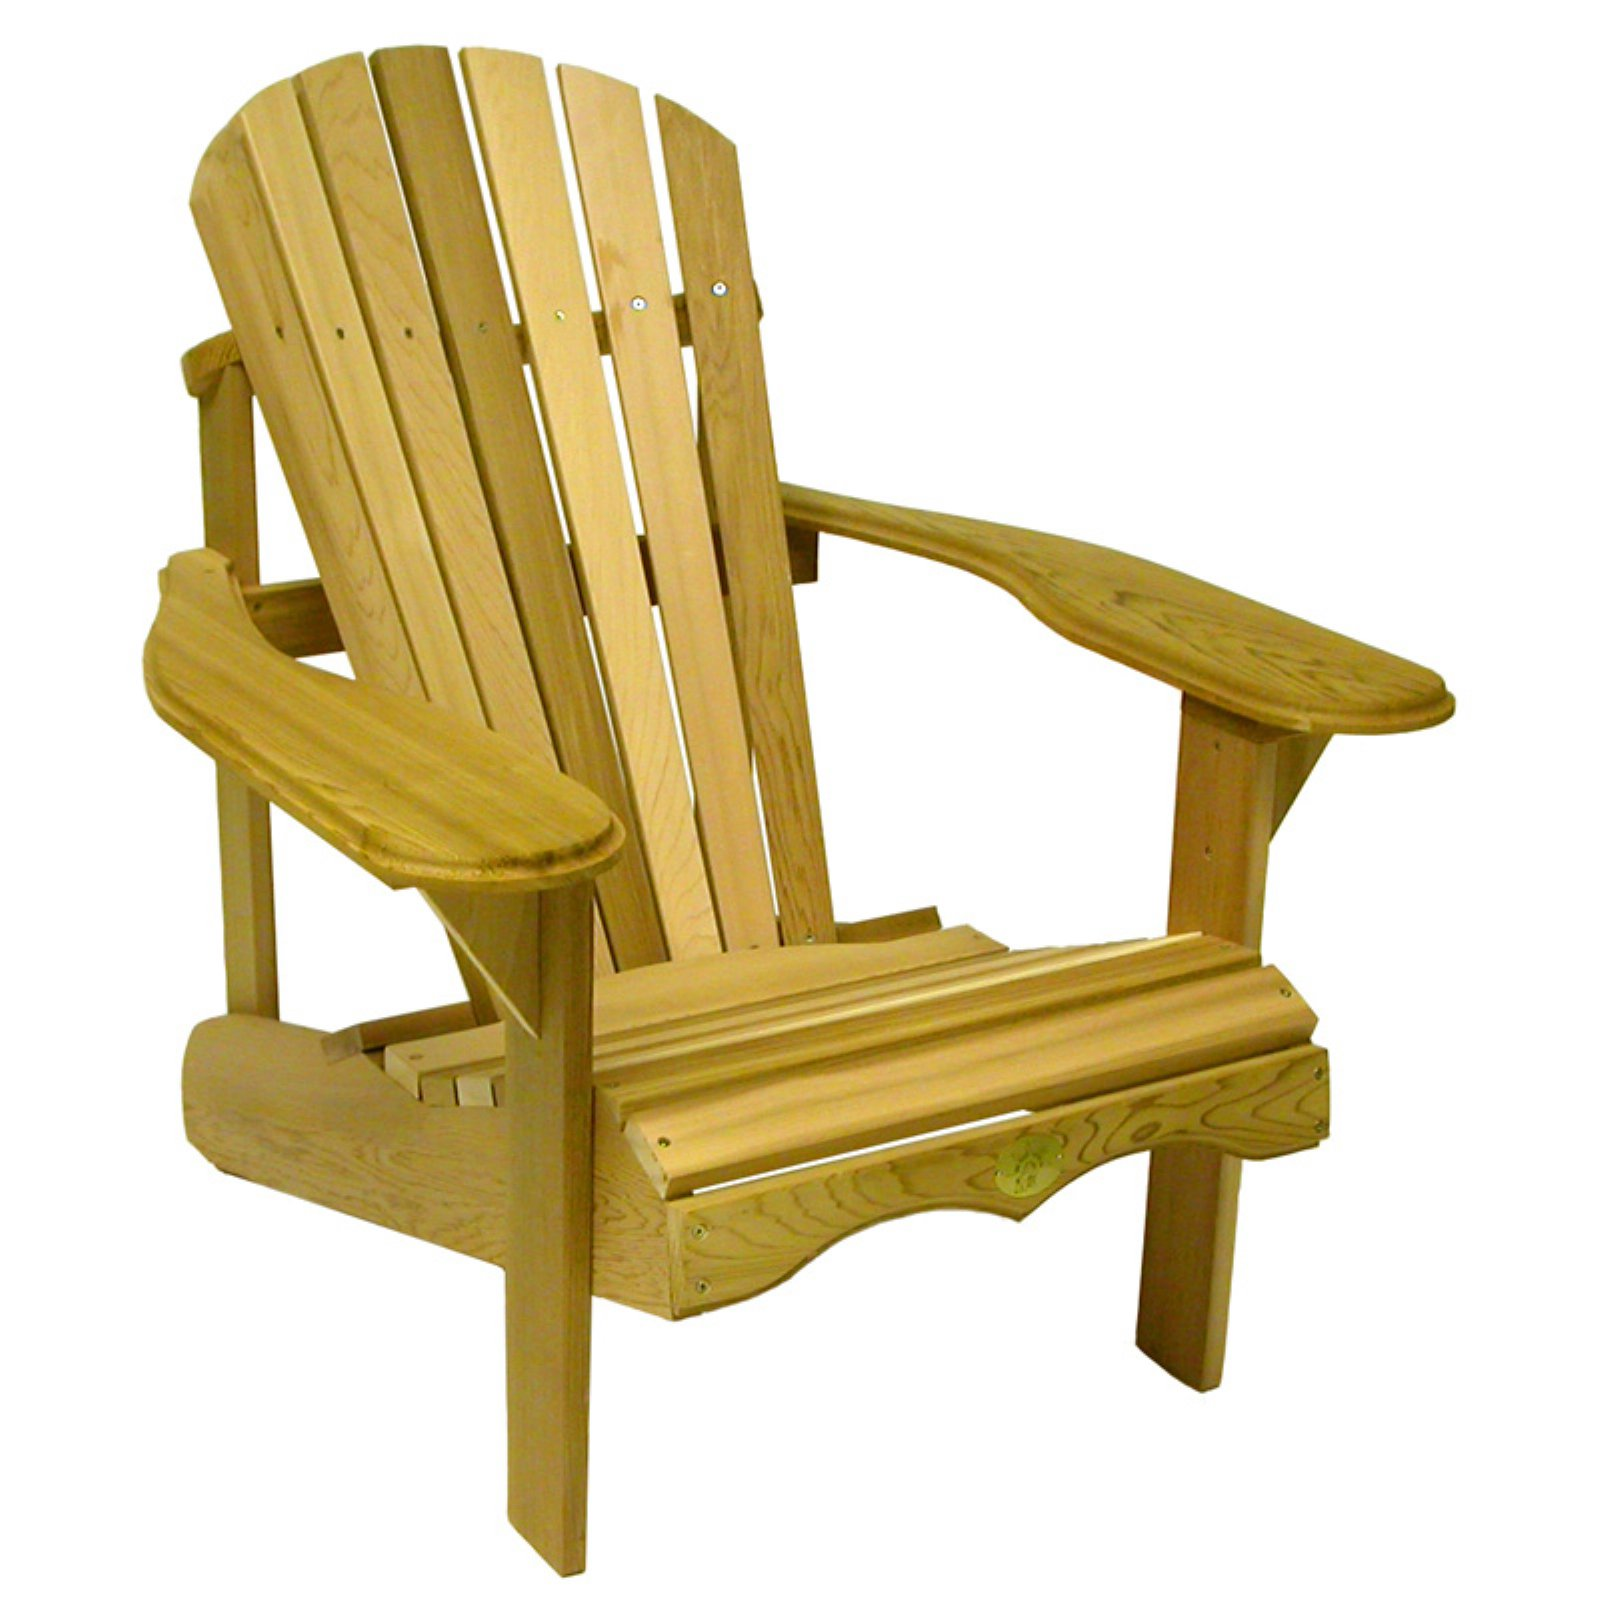 Rustic Natural Cedar Furniture Red Cedar Adirondack Chair